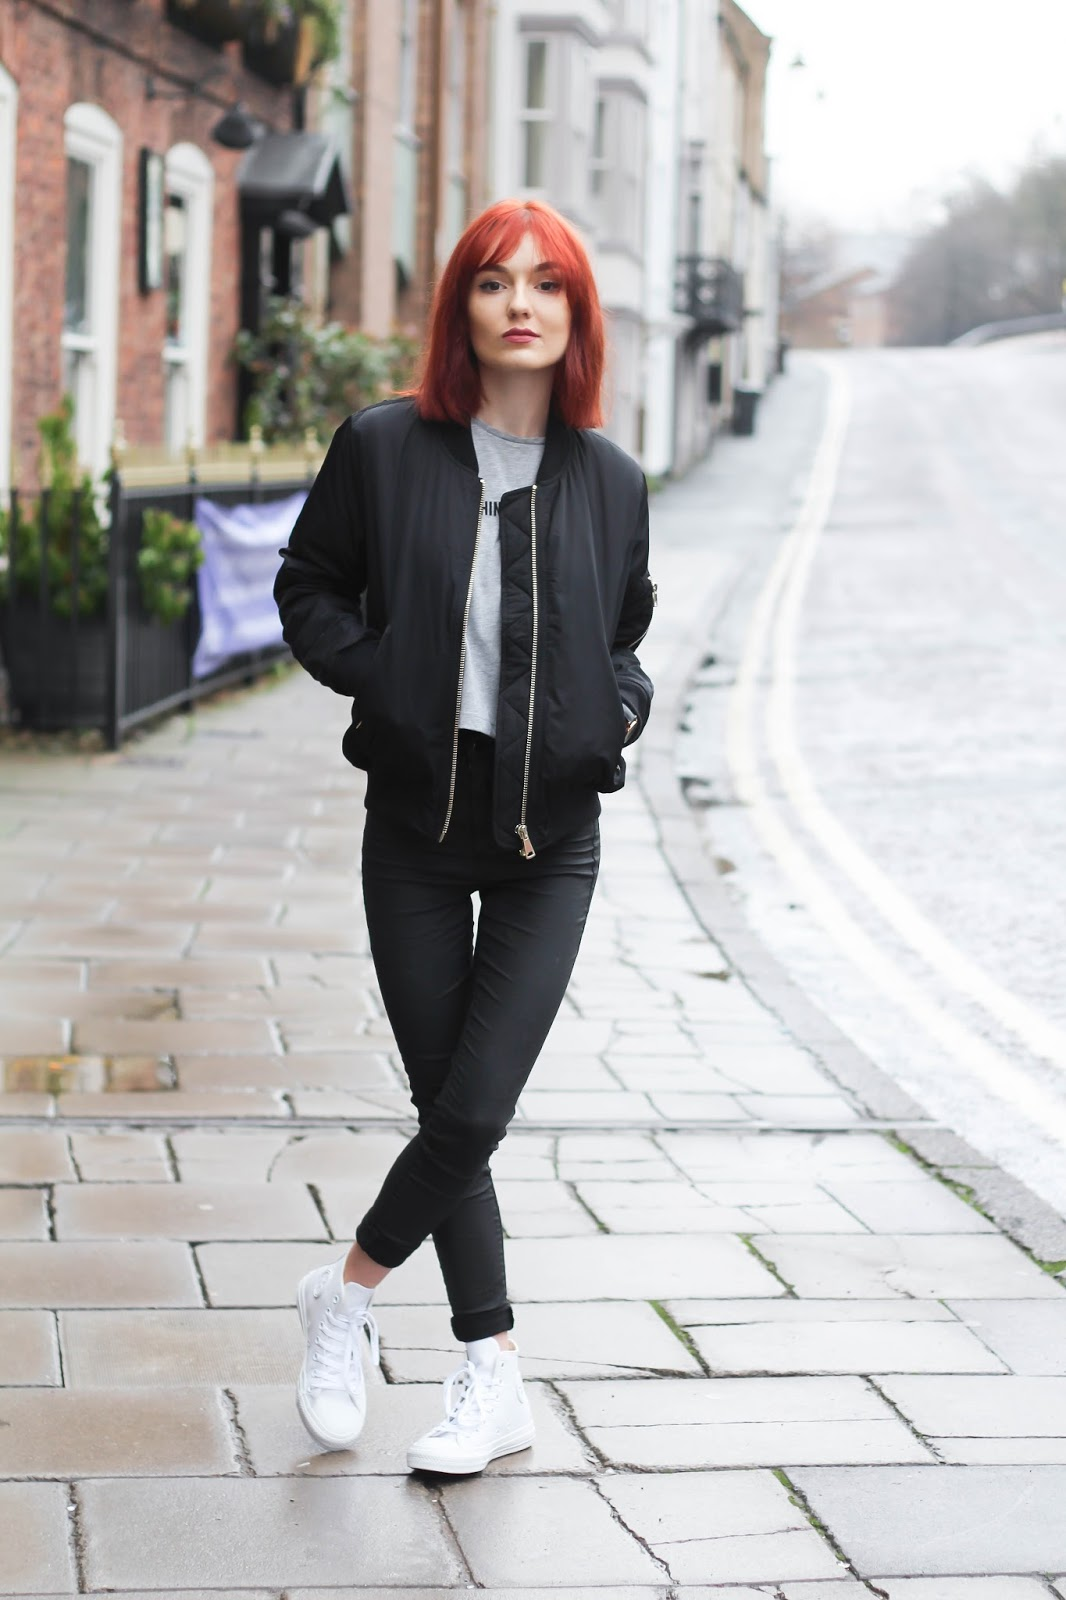 Collection Black Bomber Jacket Womens Outfit Pictures - Get Your